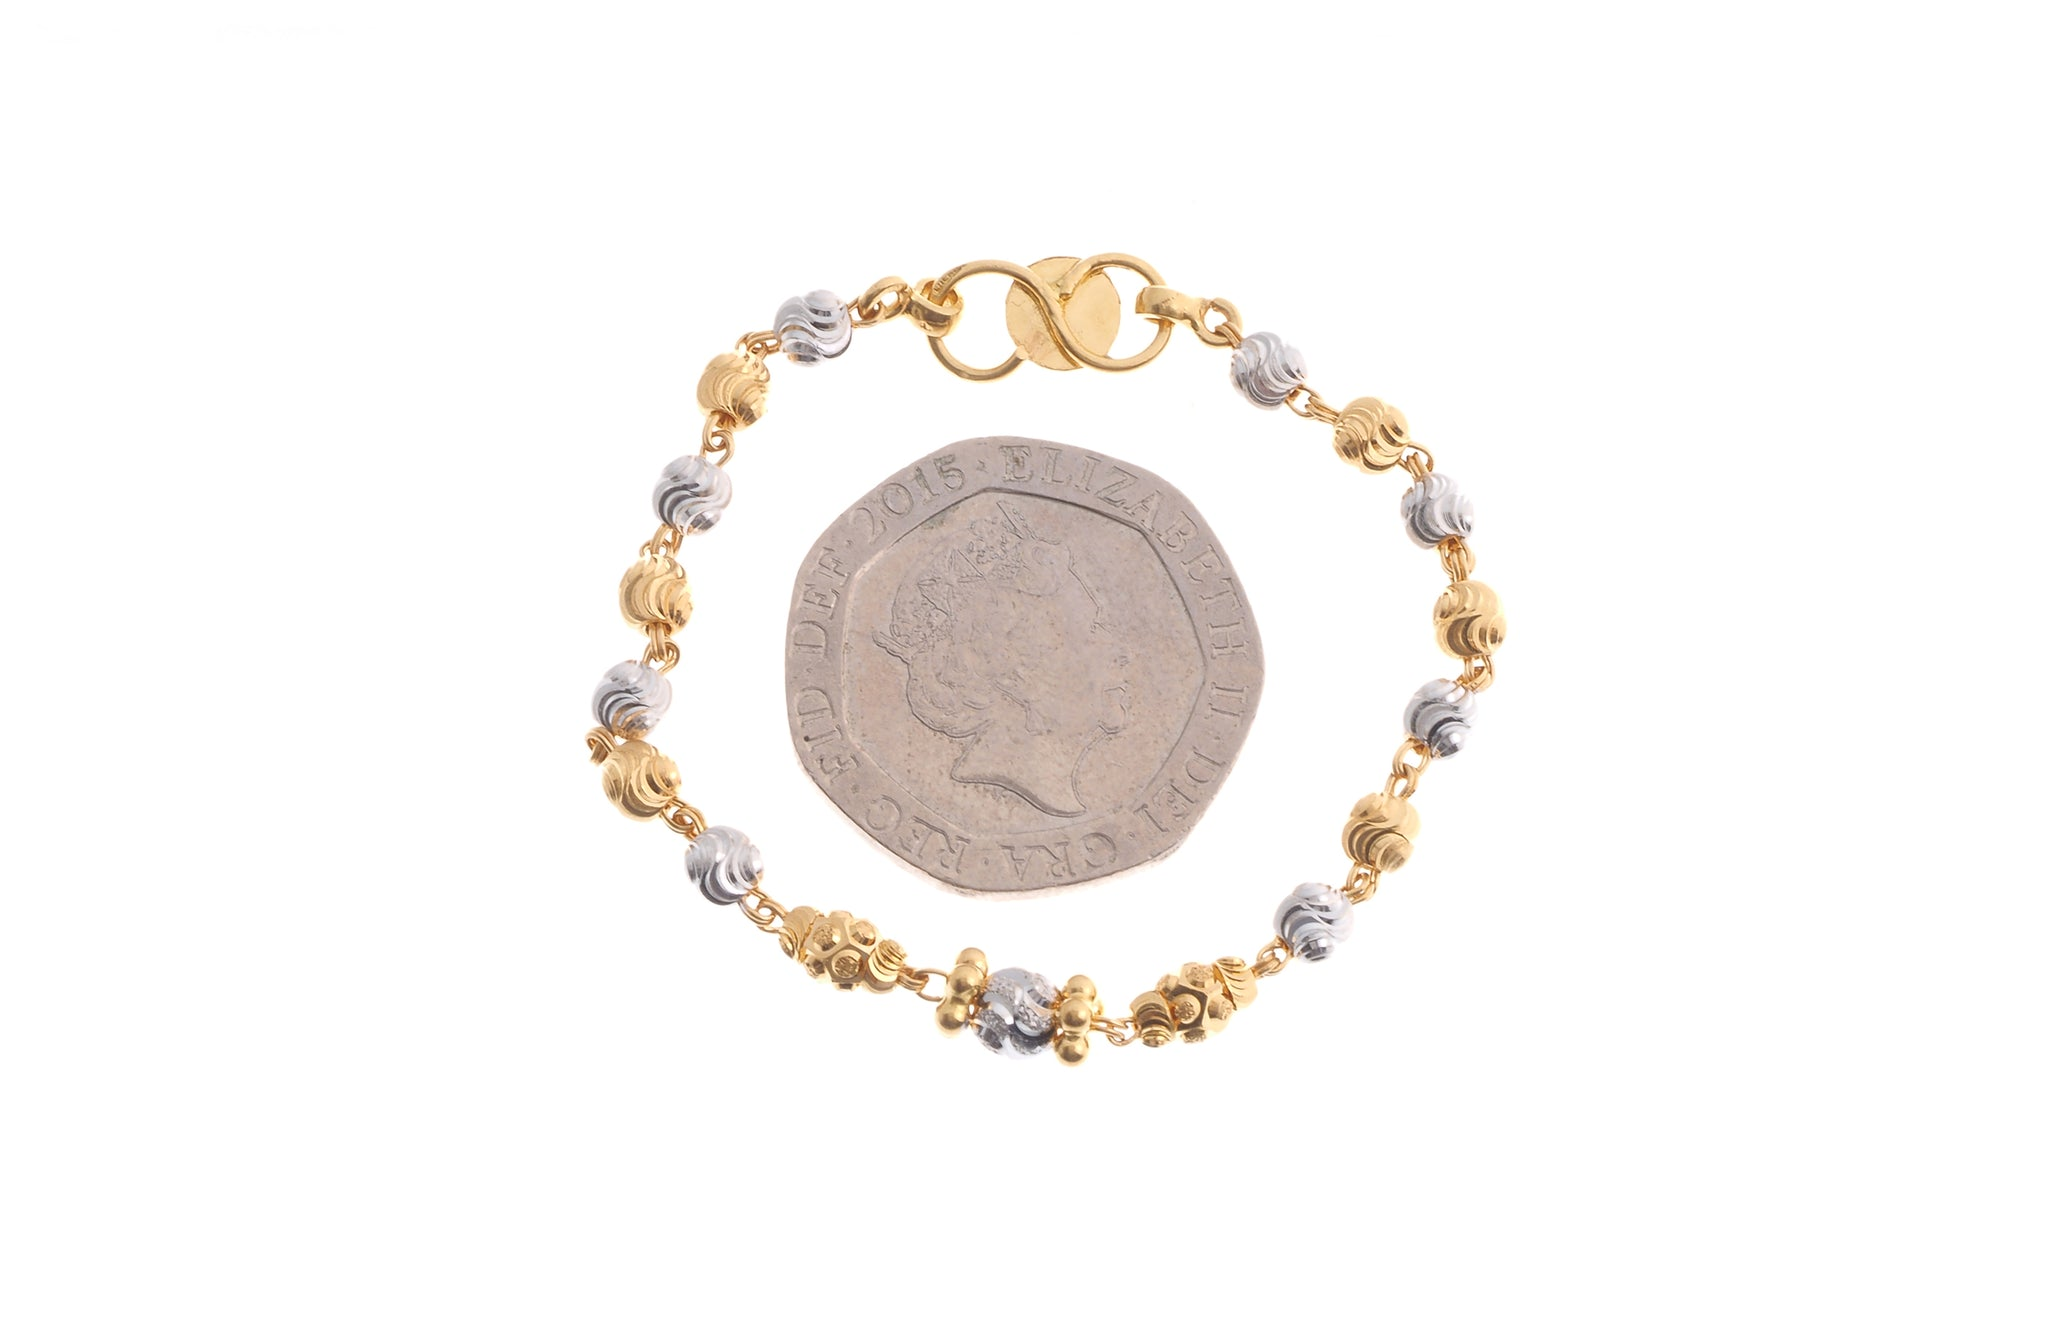 22ct Gold Children's Bracelet with Rhodium Design (3.15g) (CBR-6610)